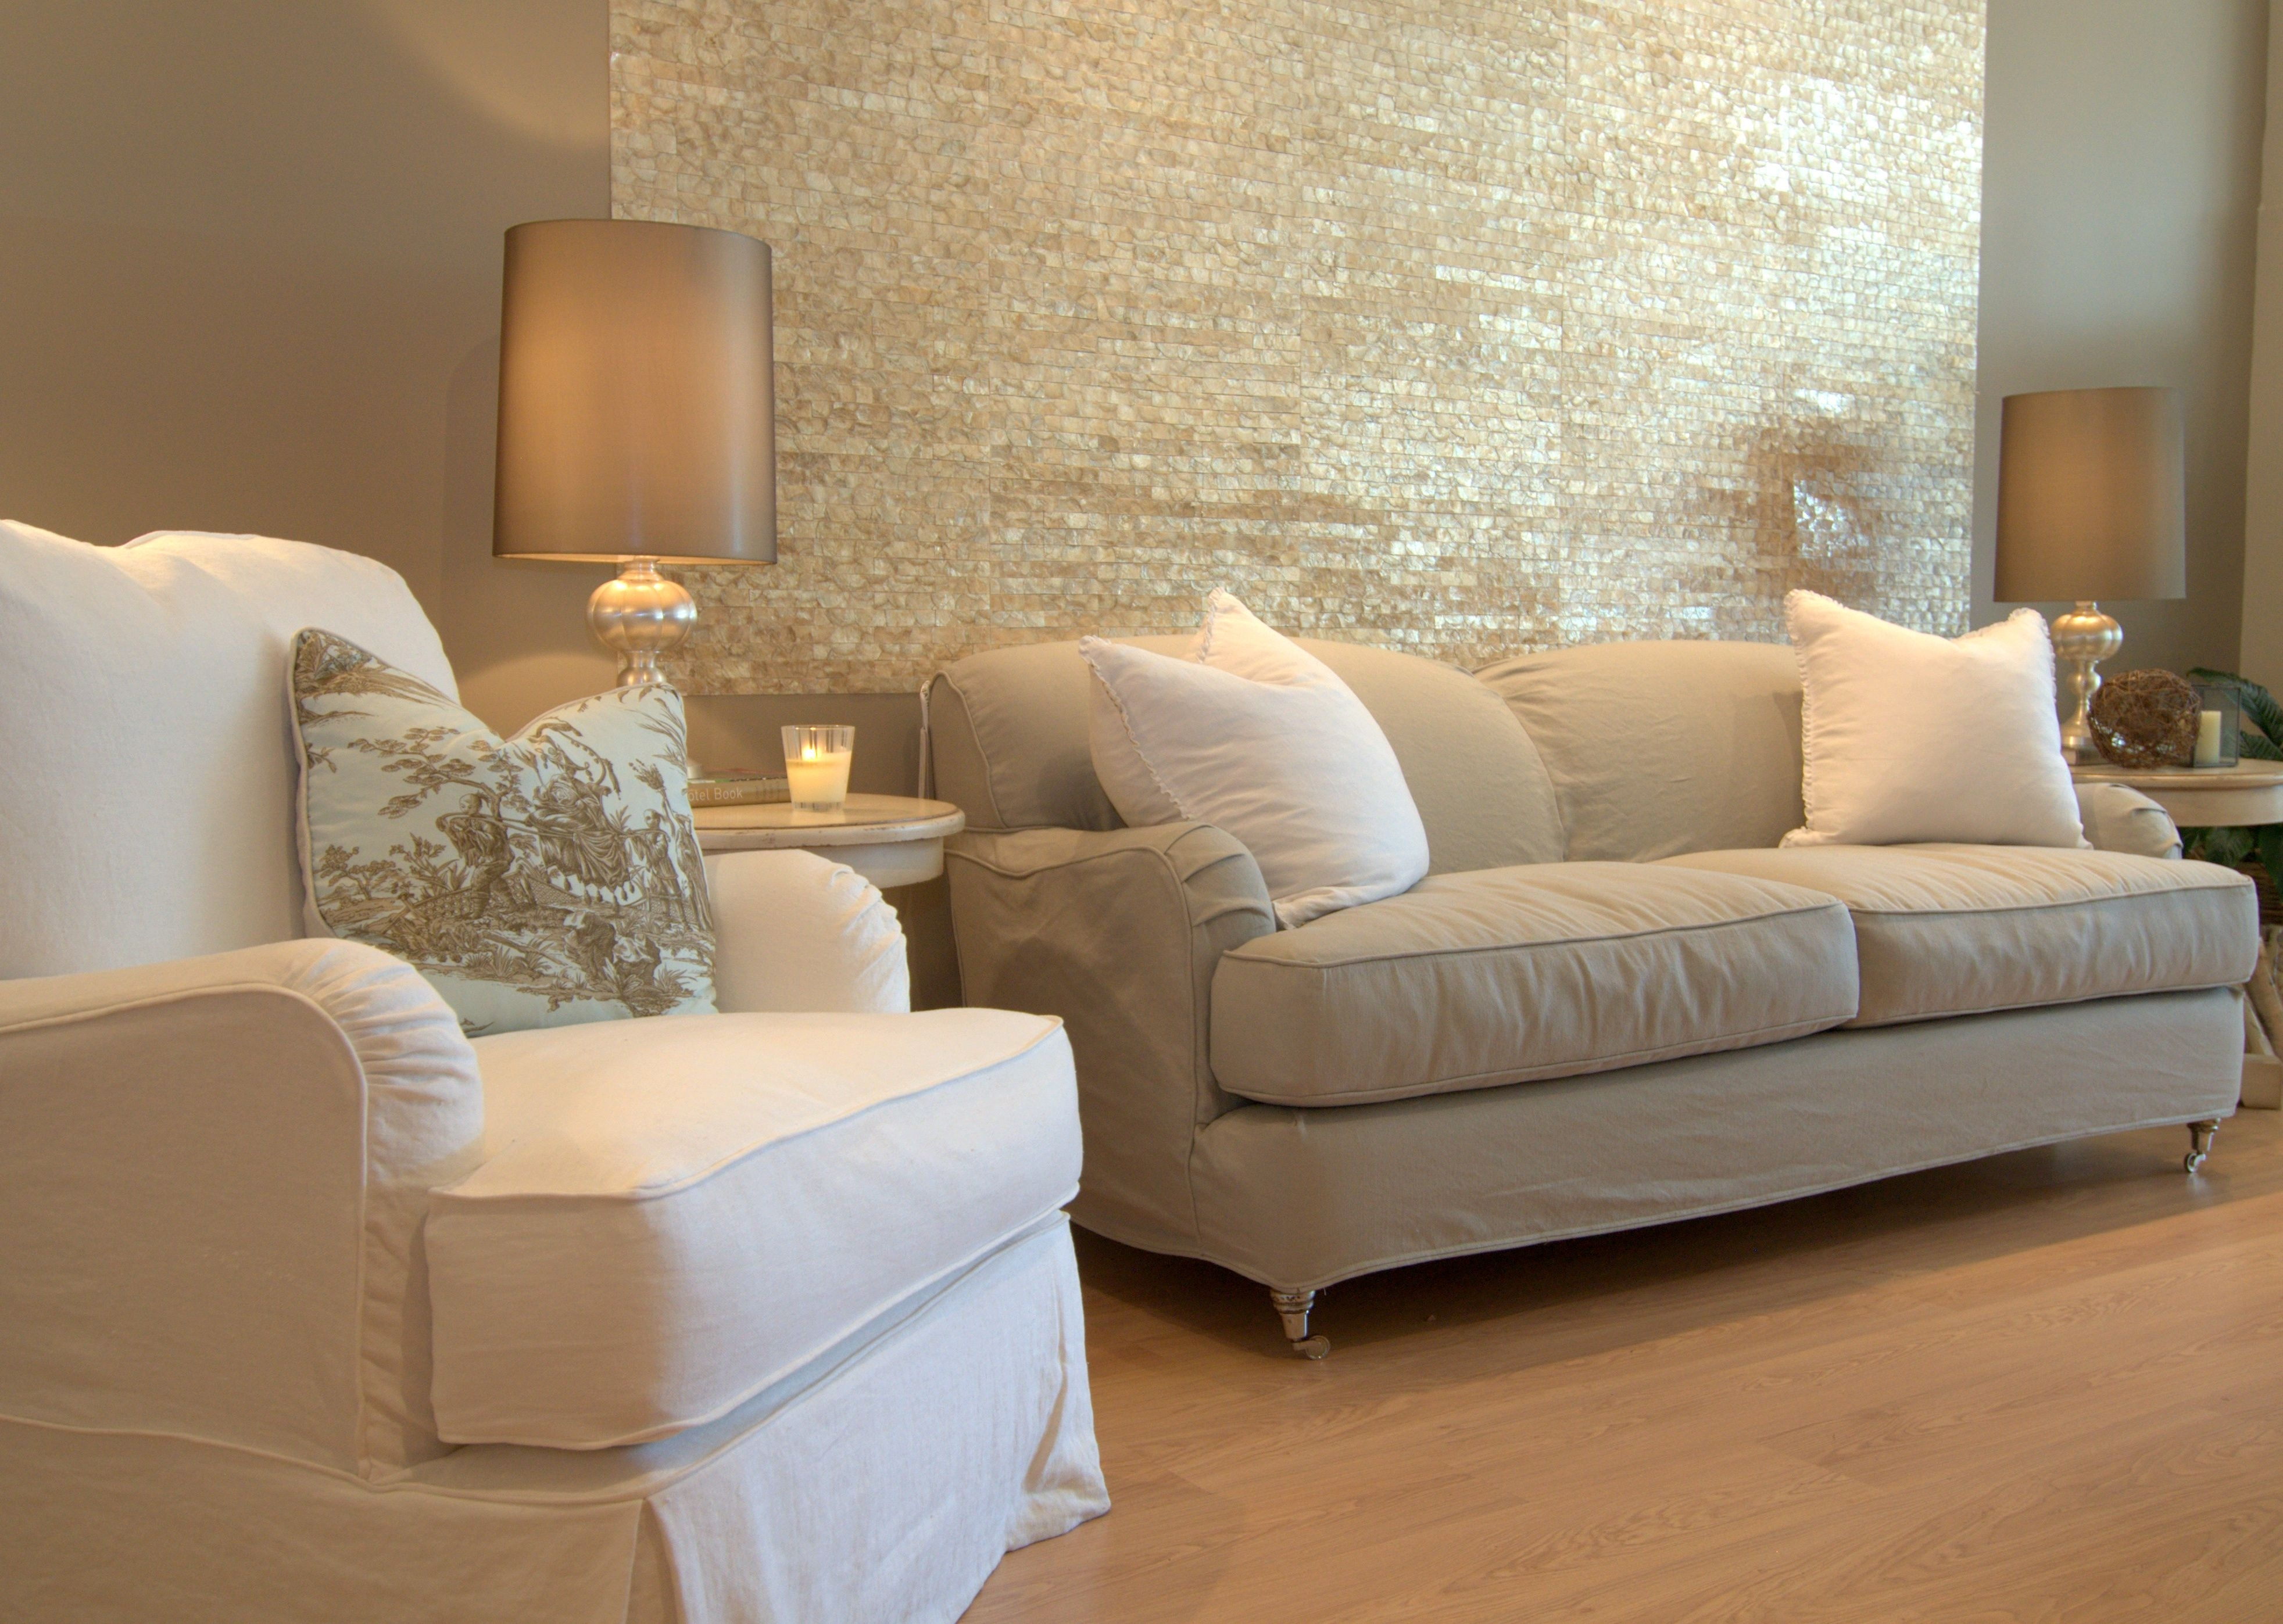 Quatrine - Birmingham. London Sofa And Milan Chair | Inside Our throughout Quatrine Sectional Sofas